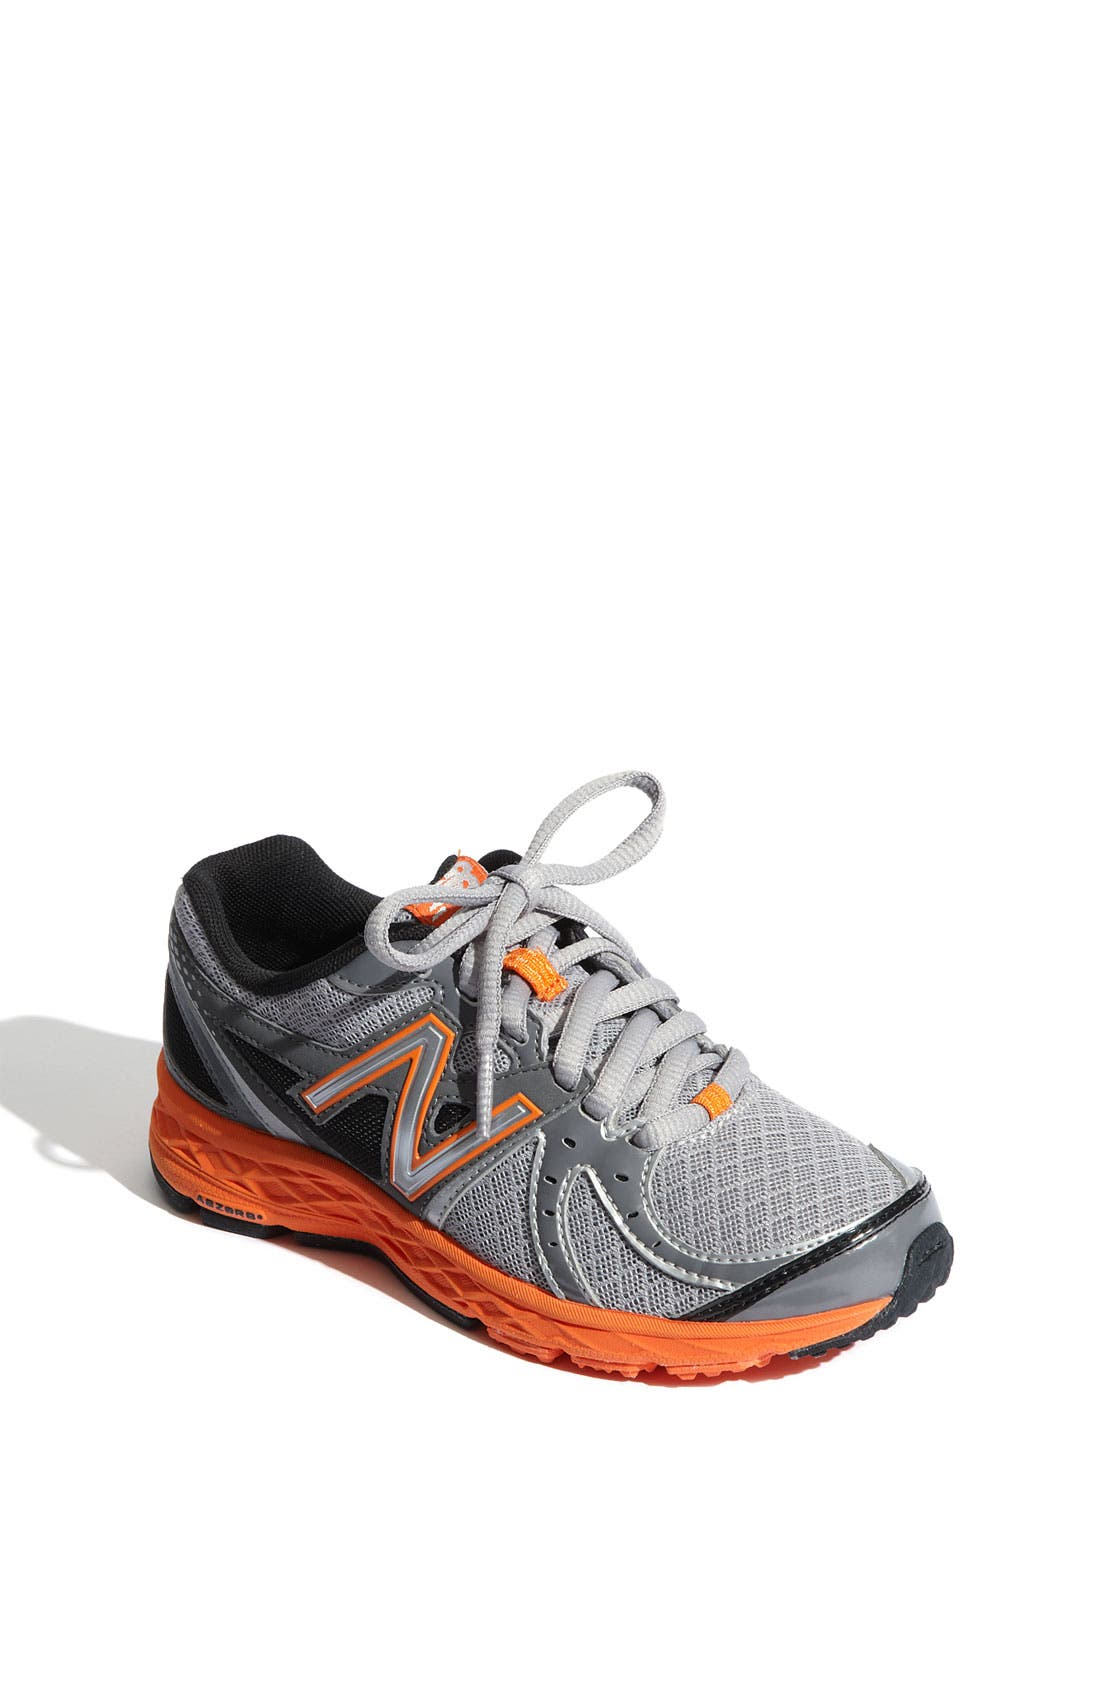 Alternate Image 1 Selected - New Balance '790' Trail Running Shoe (Toddler, Little Kid & Big Kid)